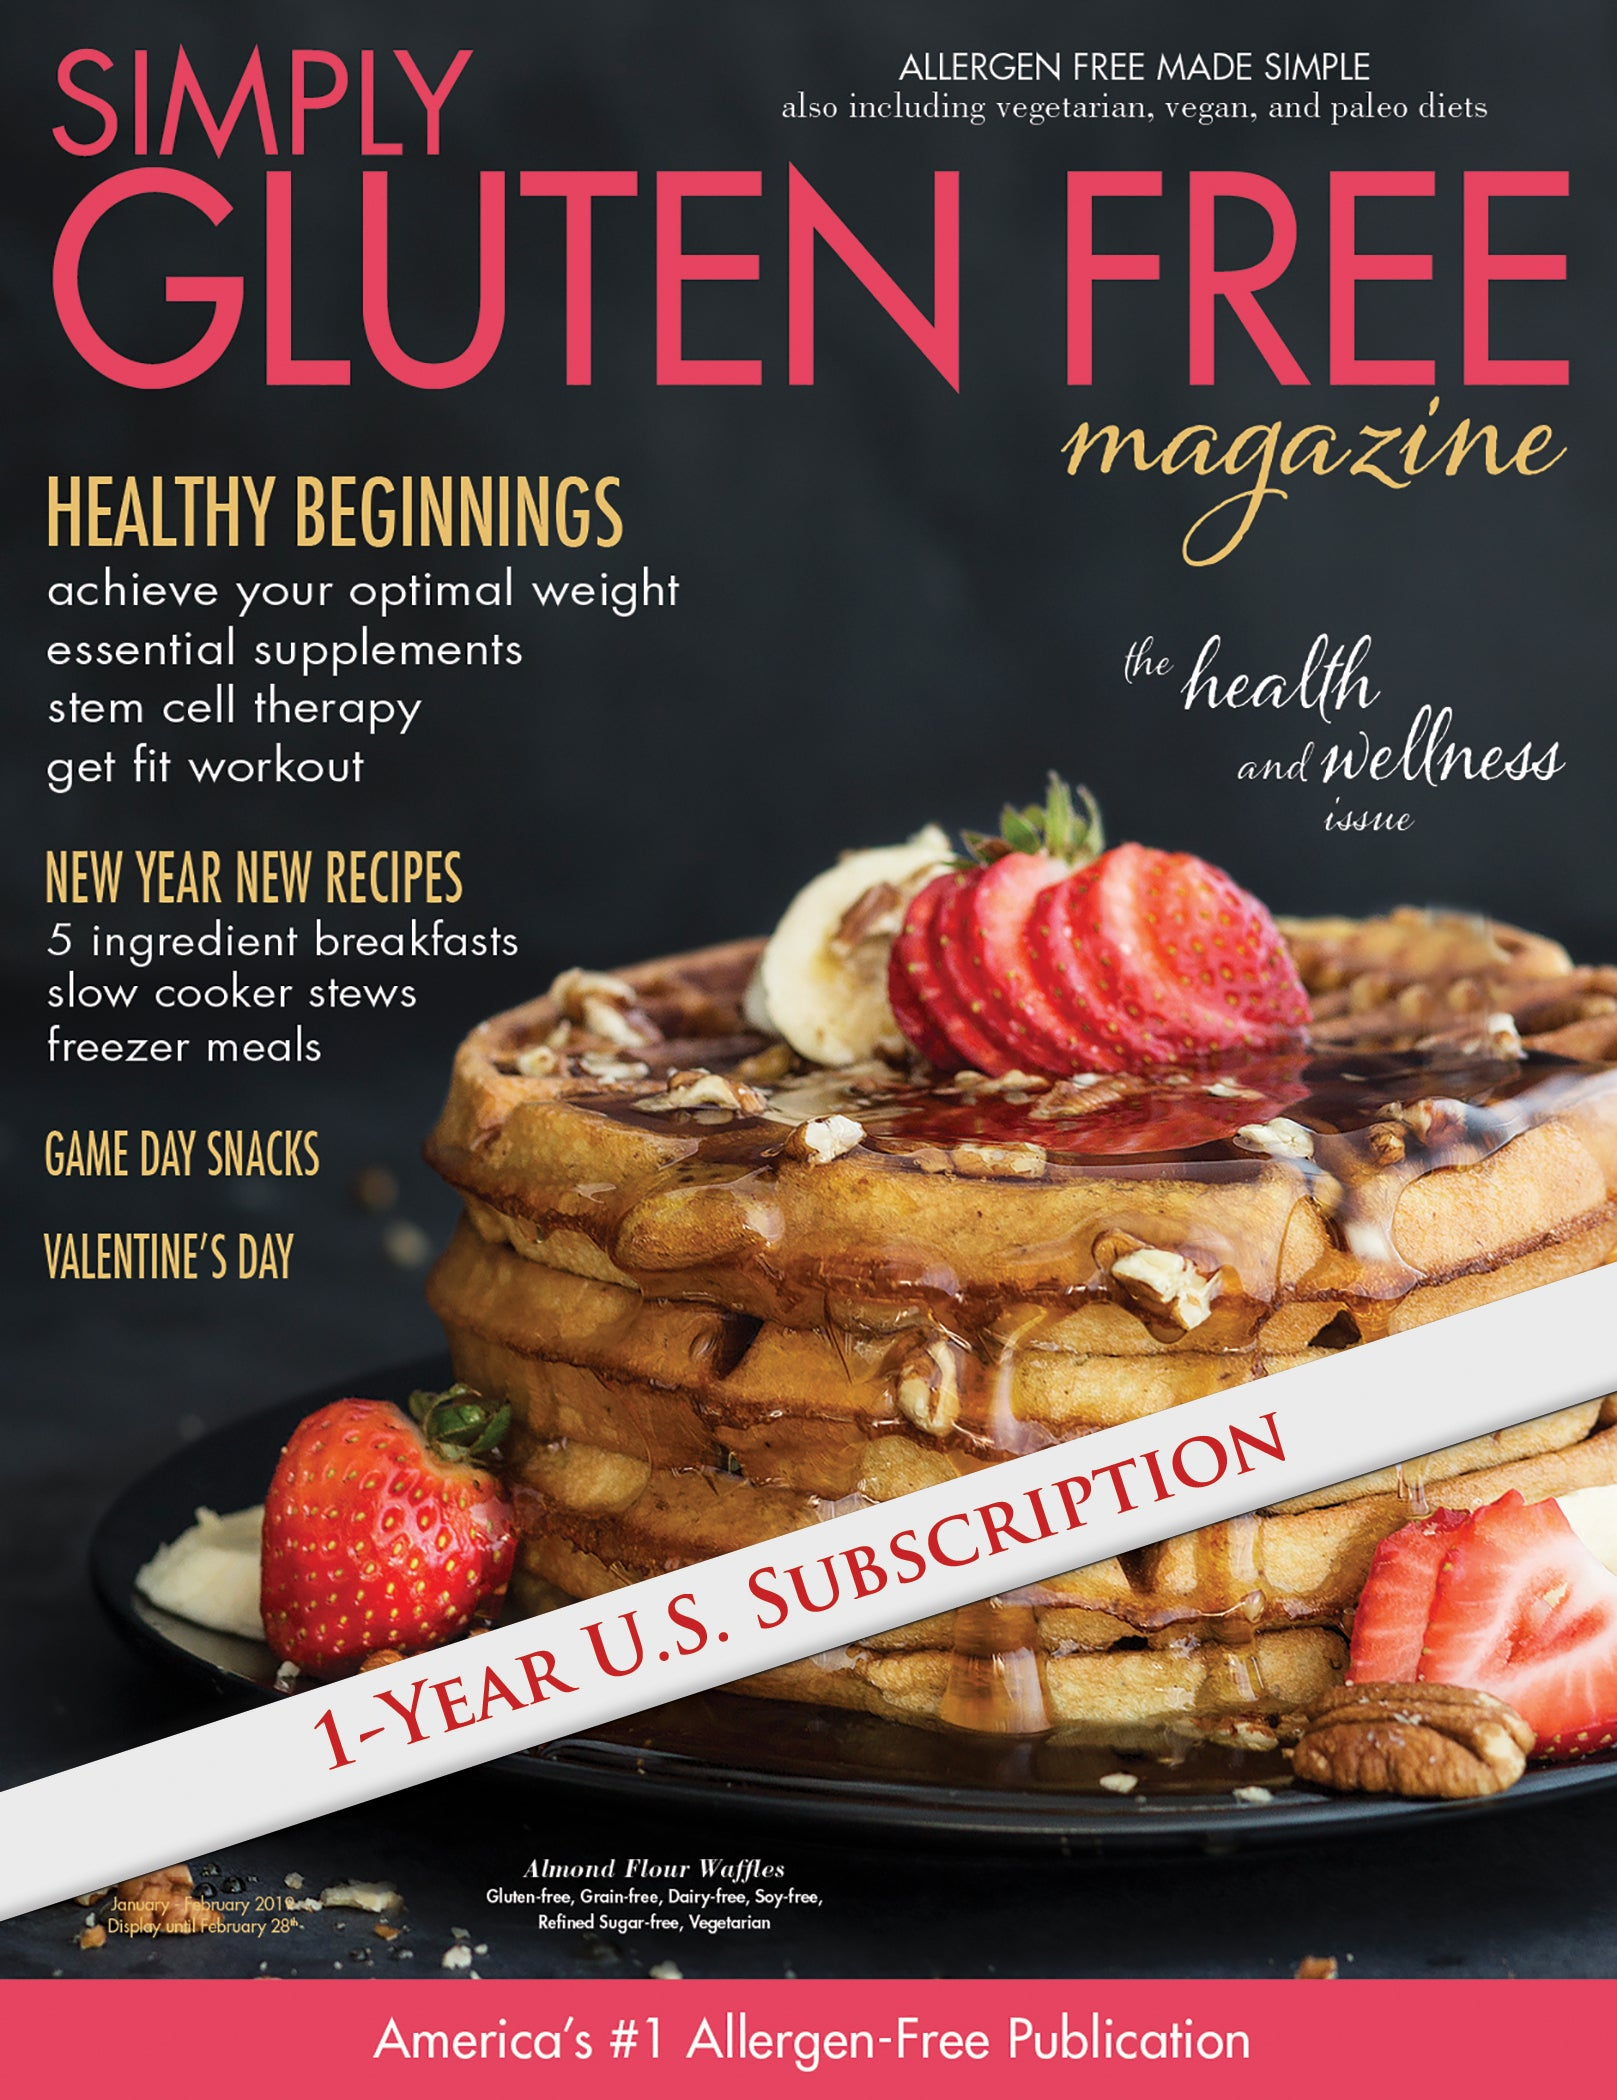 1 year USA subscription to Simply Gluten Free